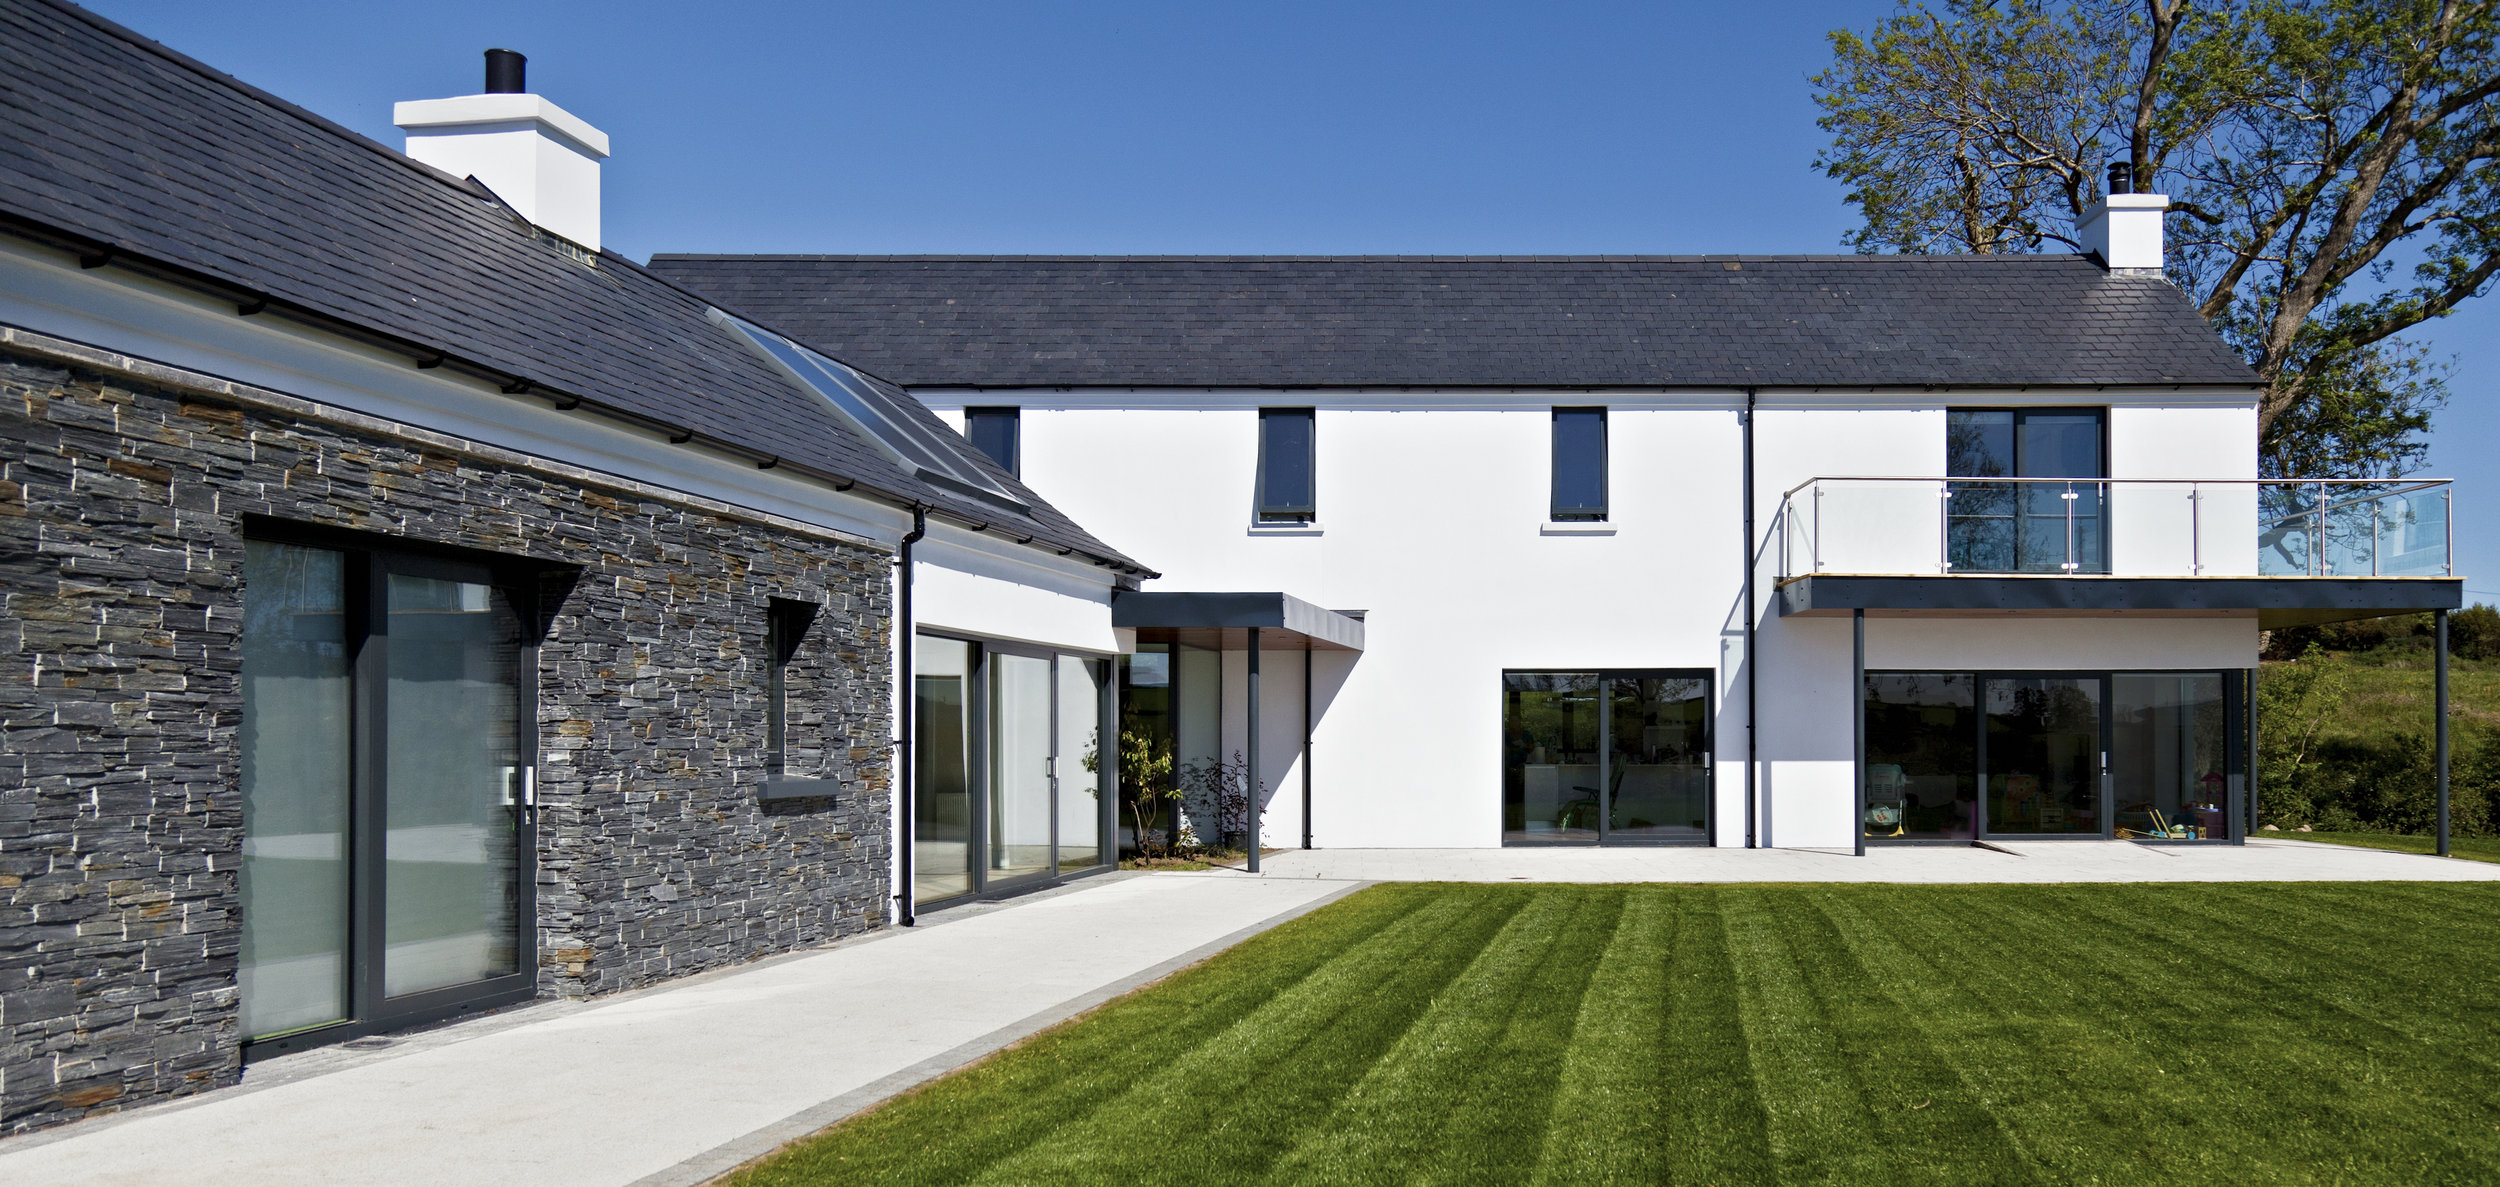 Paul_McAlister_Architects_Drumlins_Eco-House_side.jpg